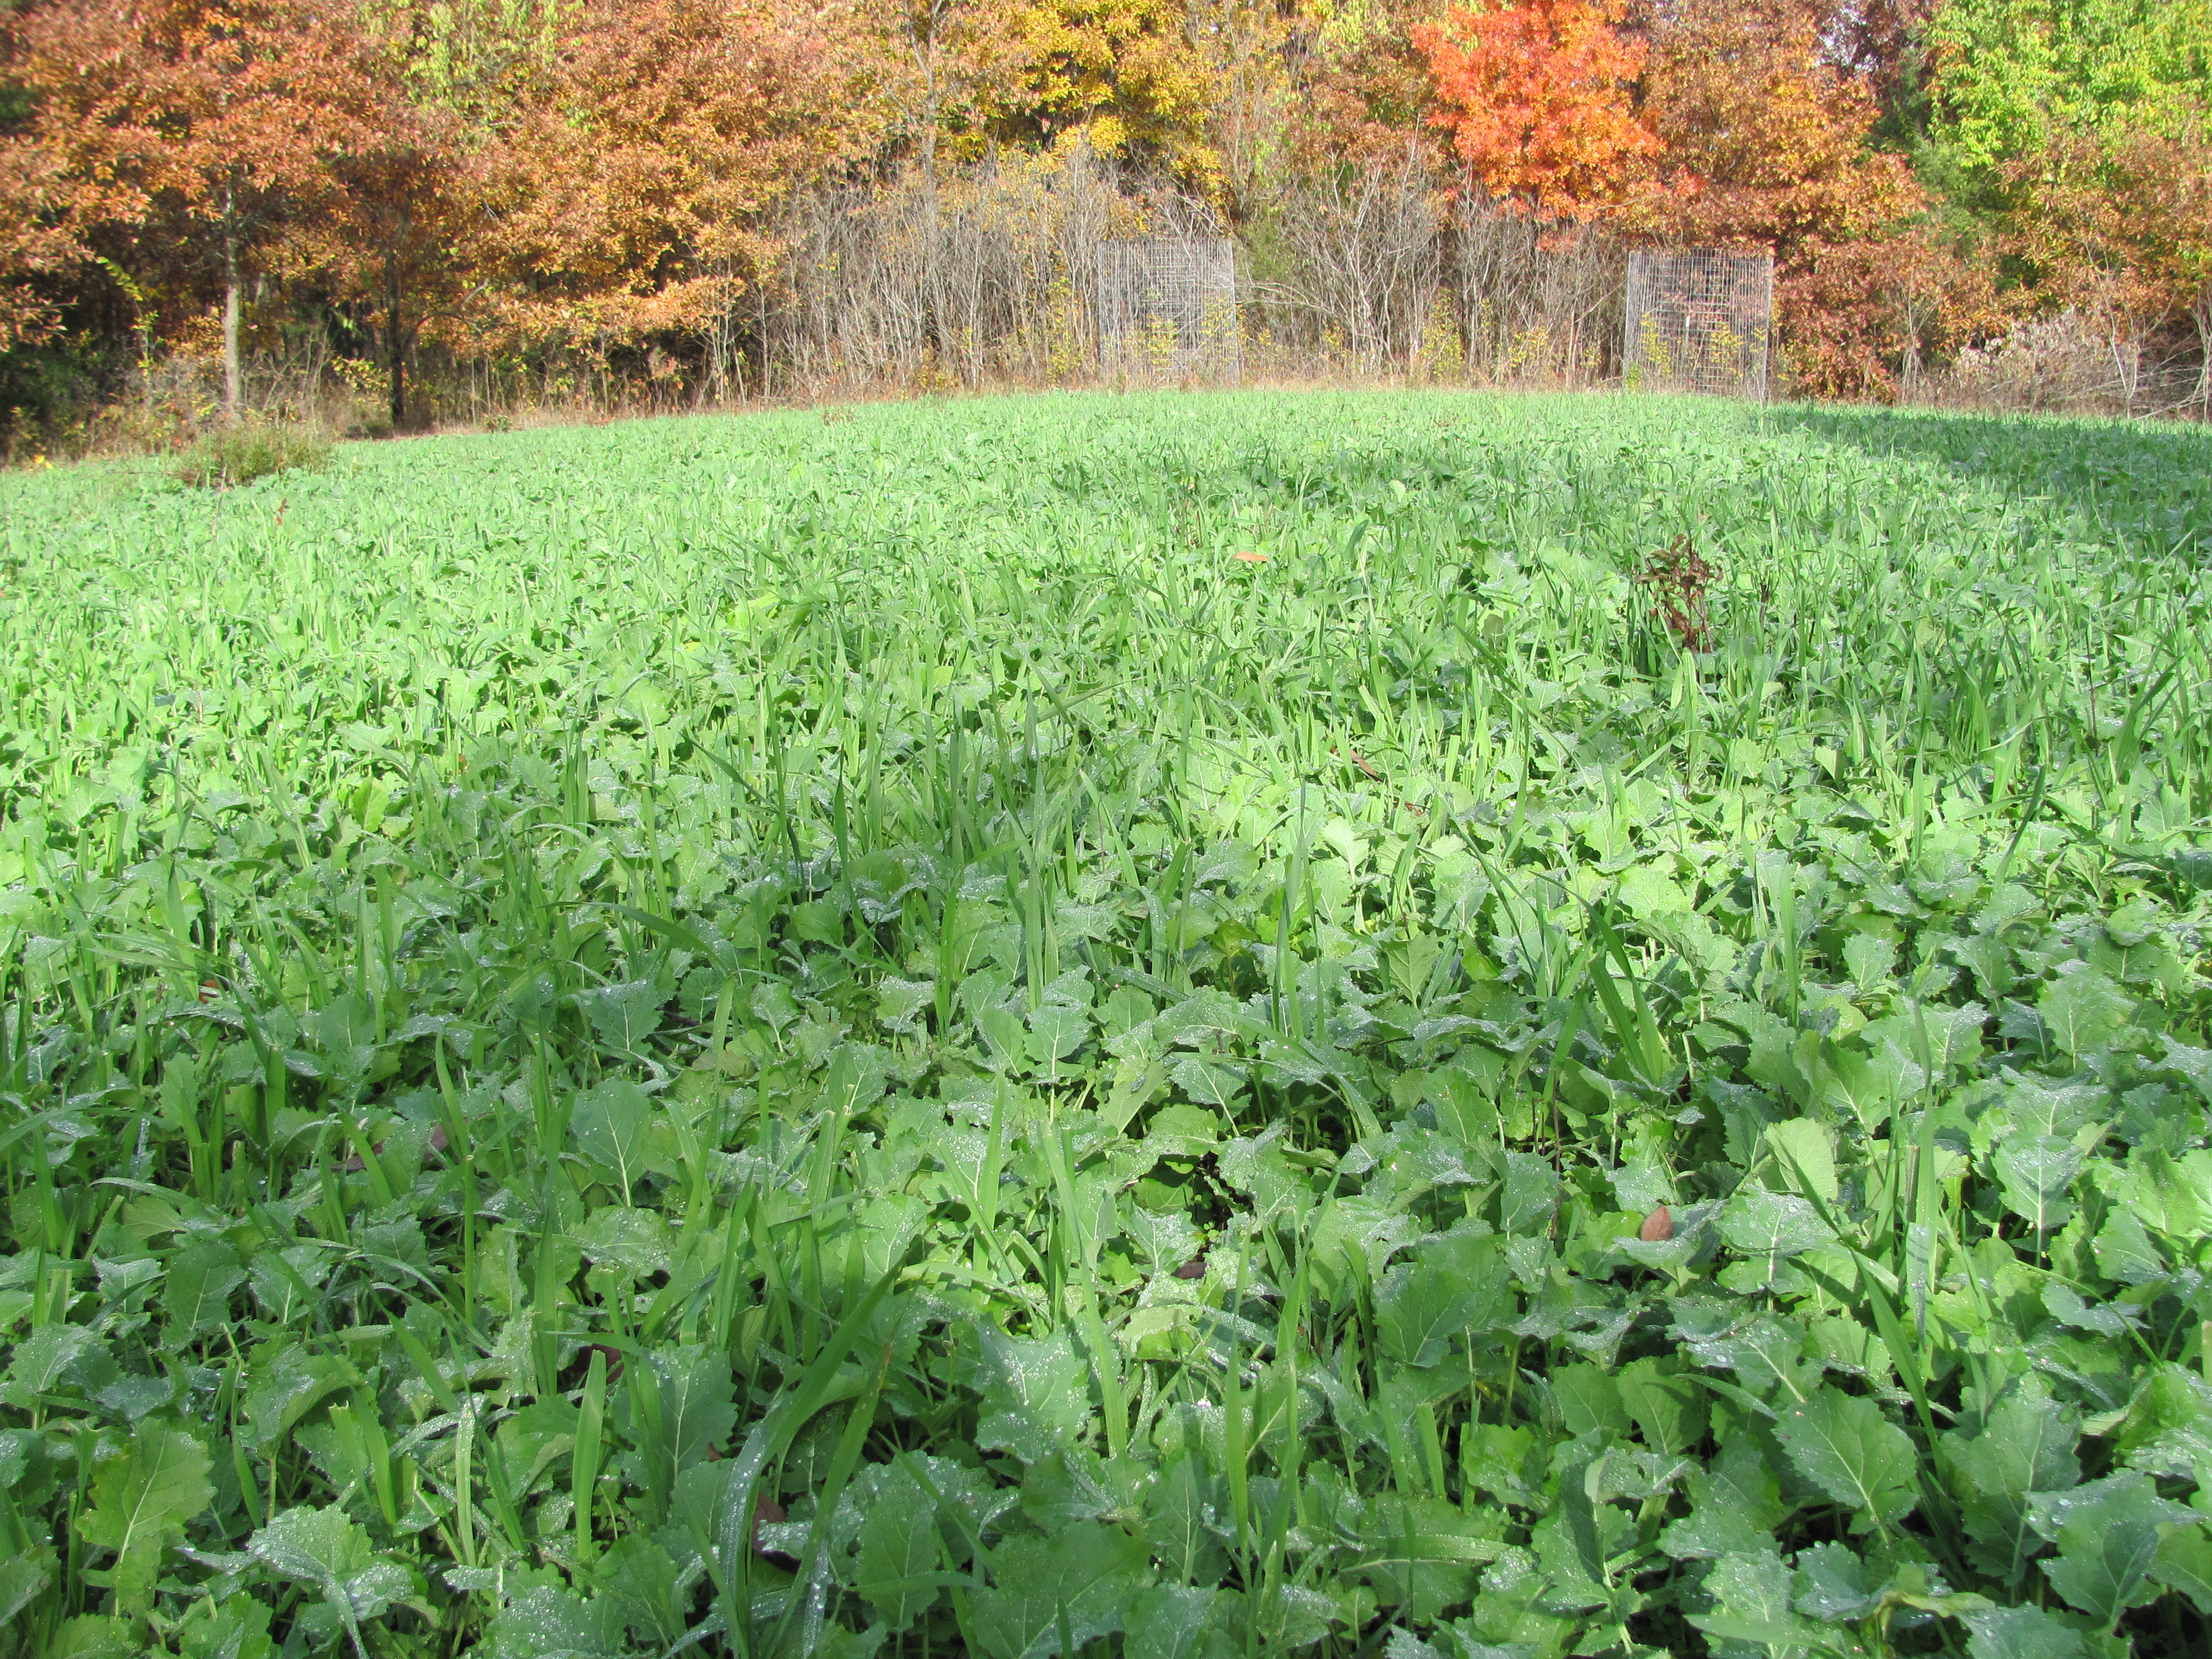 An interior plot planted in greens and growing lush like these brassicas and winter rye will draw deer during the entire hunting season.  Location in this instance is more important than the food variety.